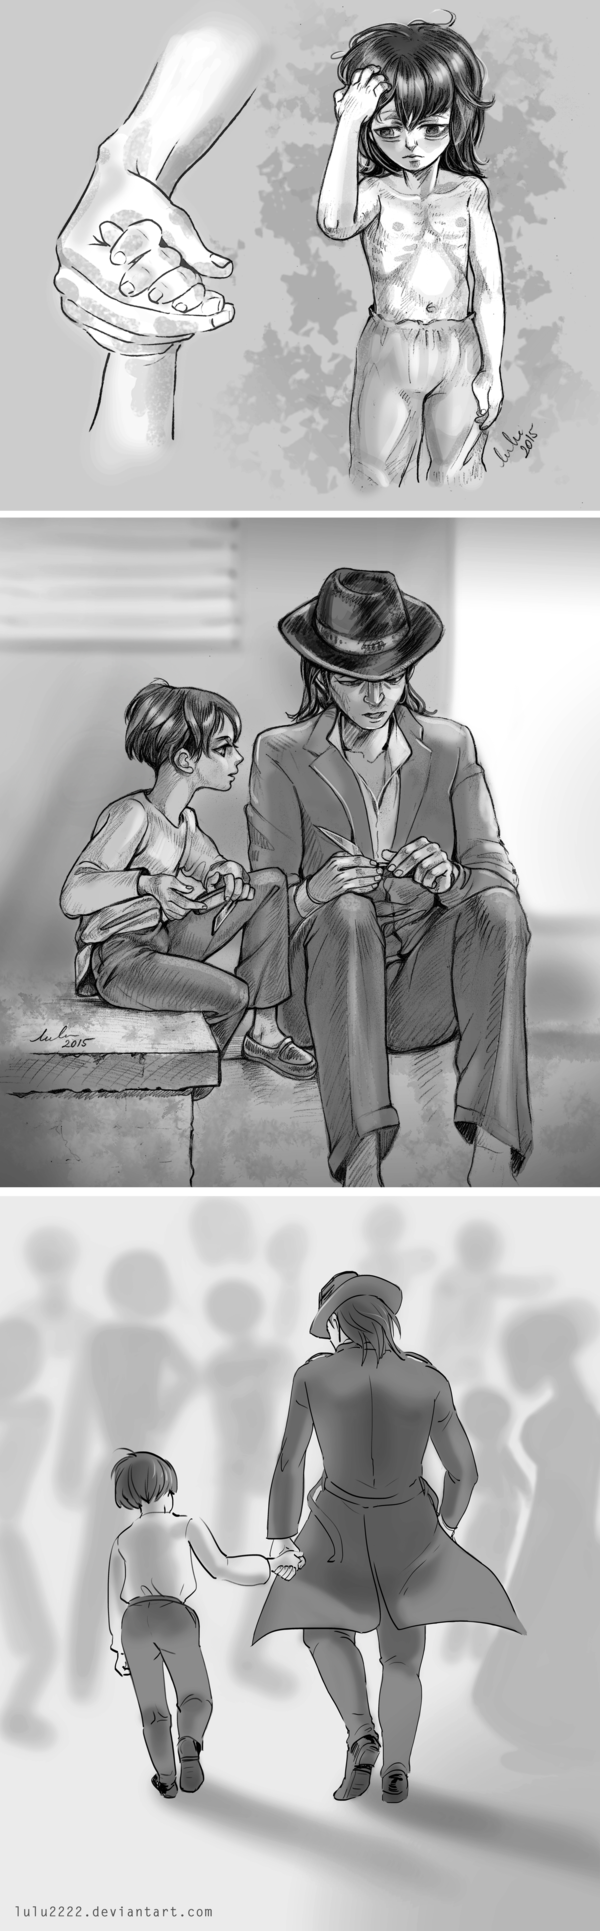 Little Levi and Kenny by Lulu2222